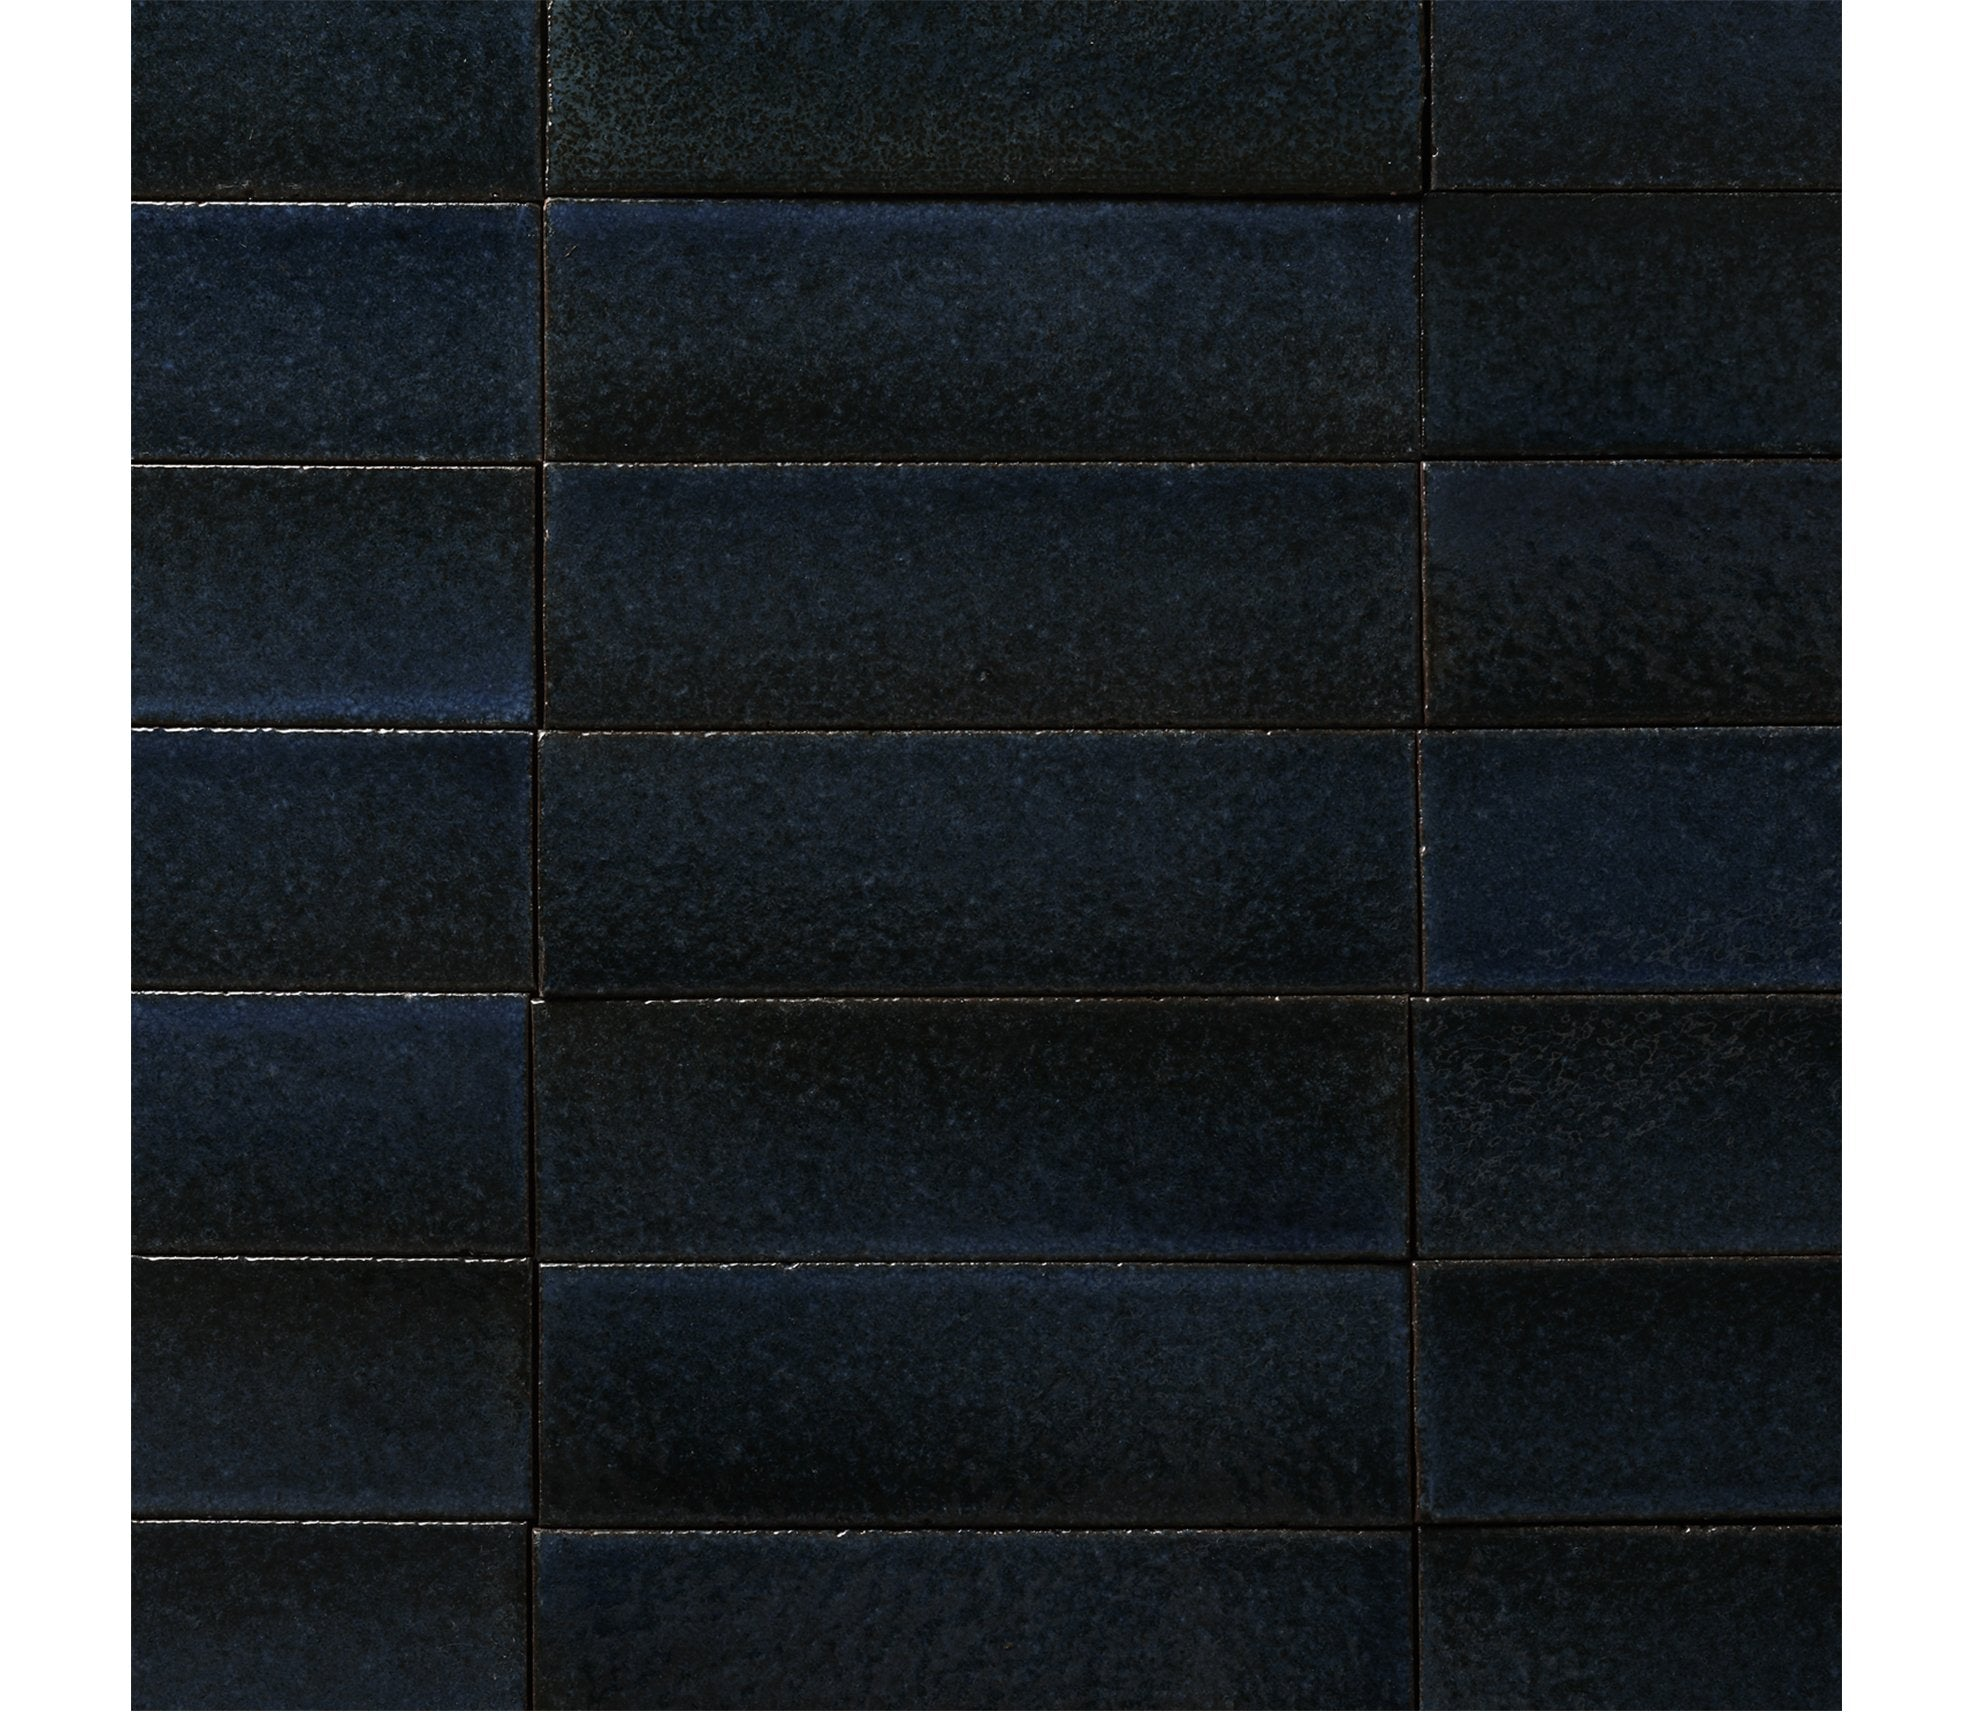 Terra Firma Glazed Bricks Product Image 52